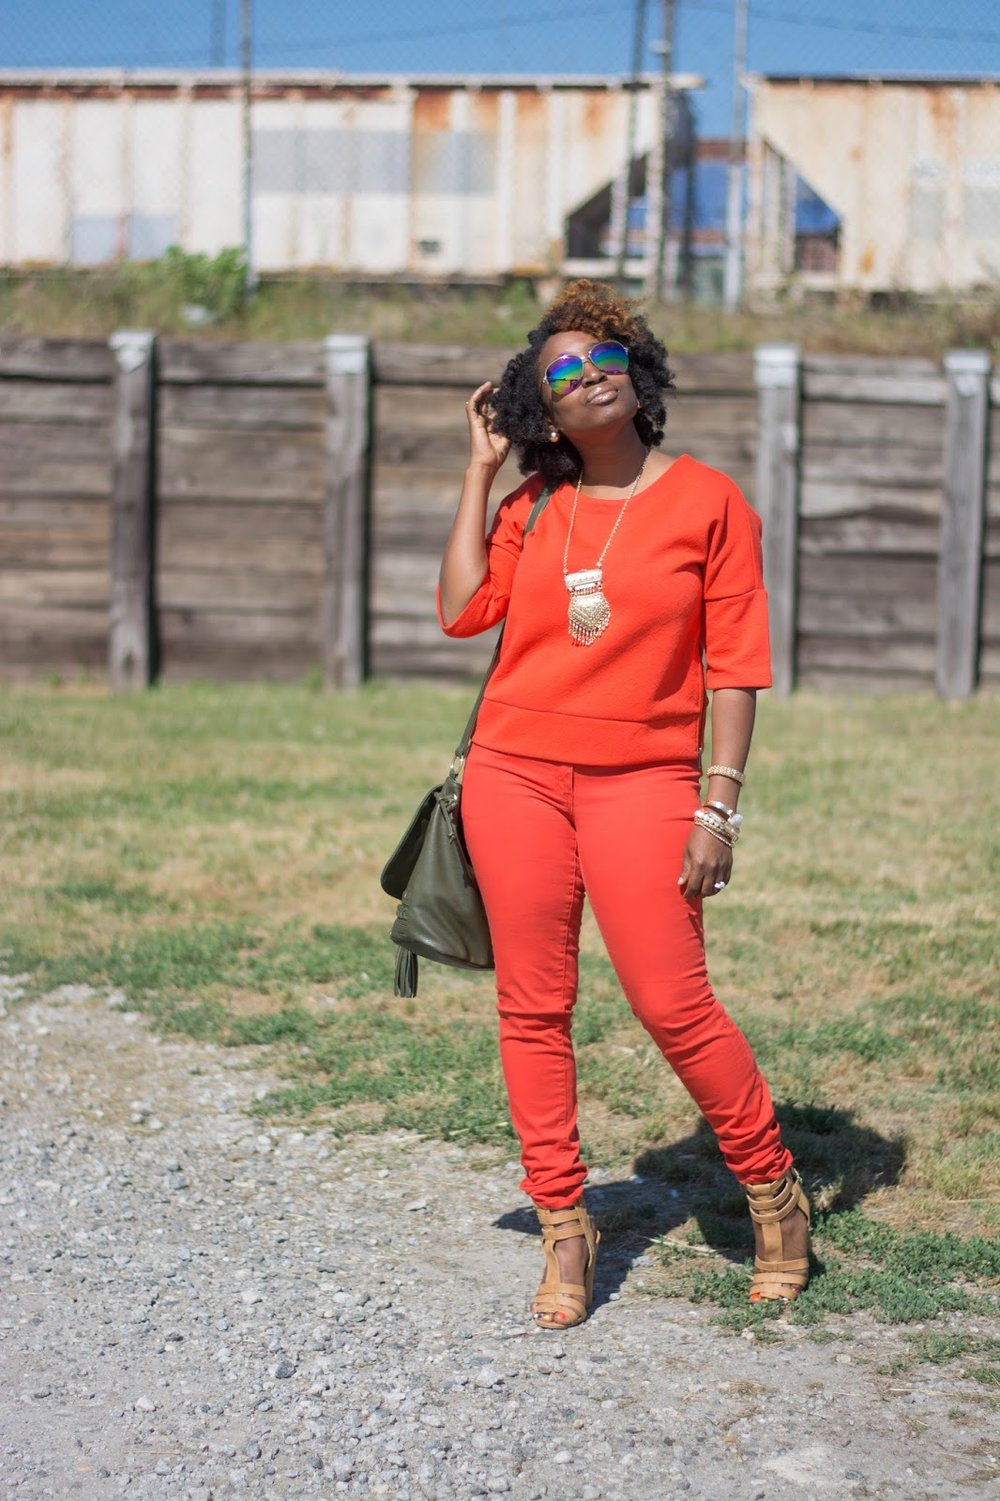 Atlanta stylist, atlanta blogger, black blogger, black girls rock, monochrome, orange fashion, atlanta street style, mirrored glasses, charlotte russe sandals, shoedazzle handbag, handbag with tassle, natural hair fashion, atlanta street style, atlanta style influencer, forever21 accessories, style blogger, black girl killing it